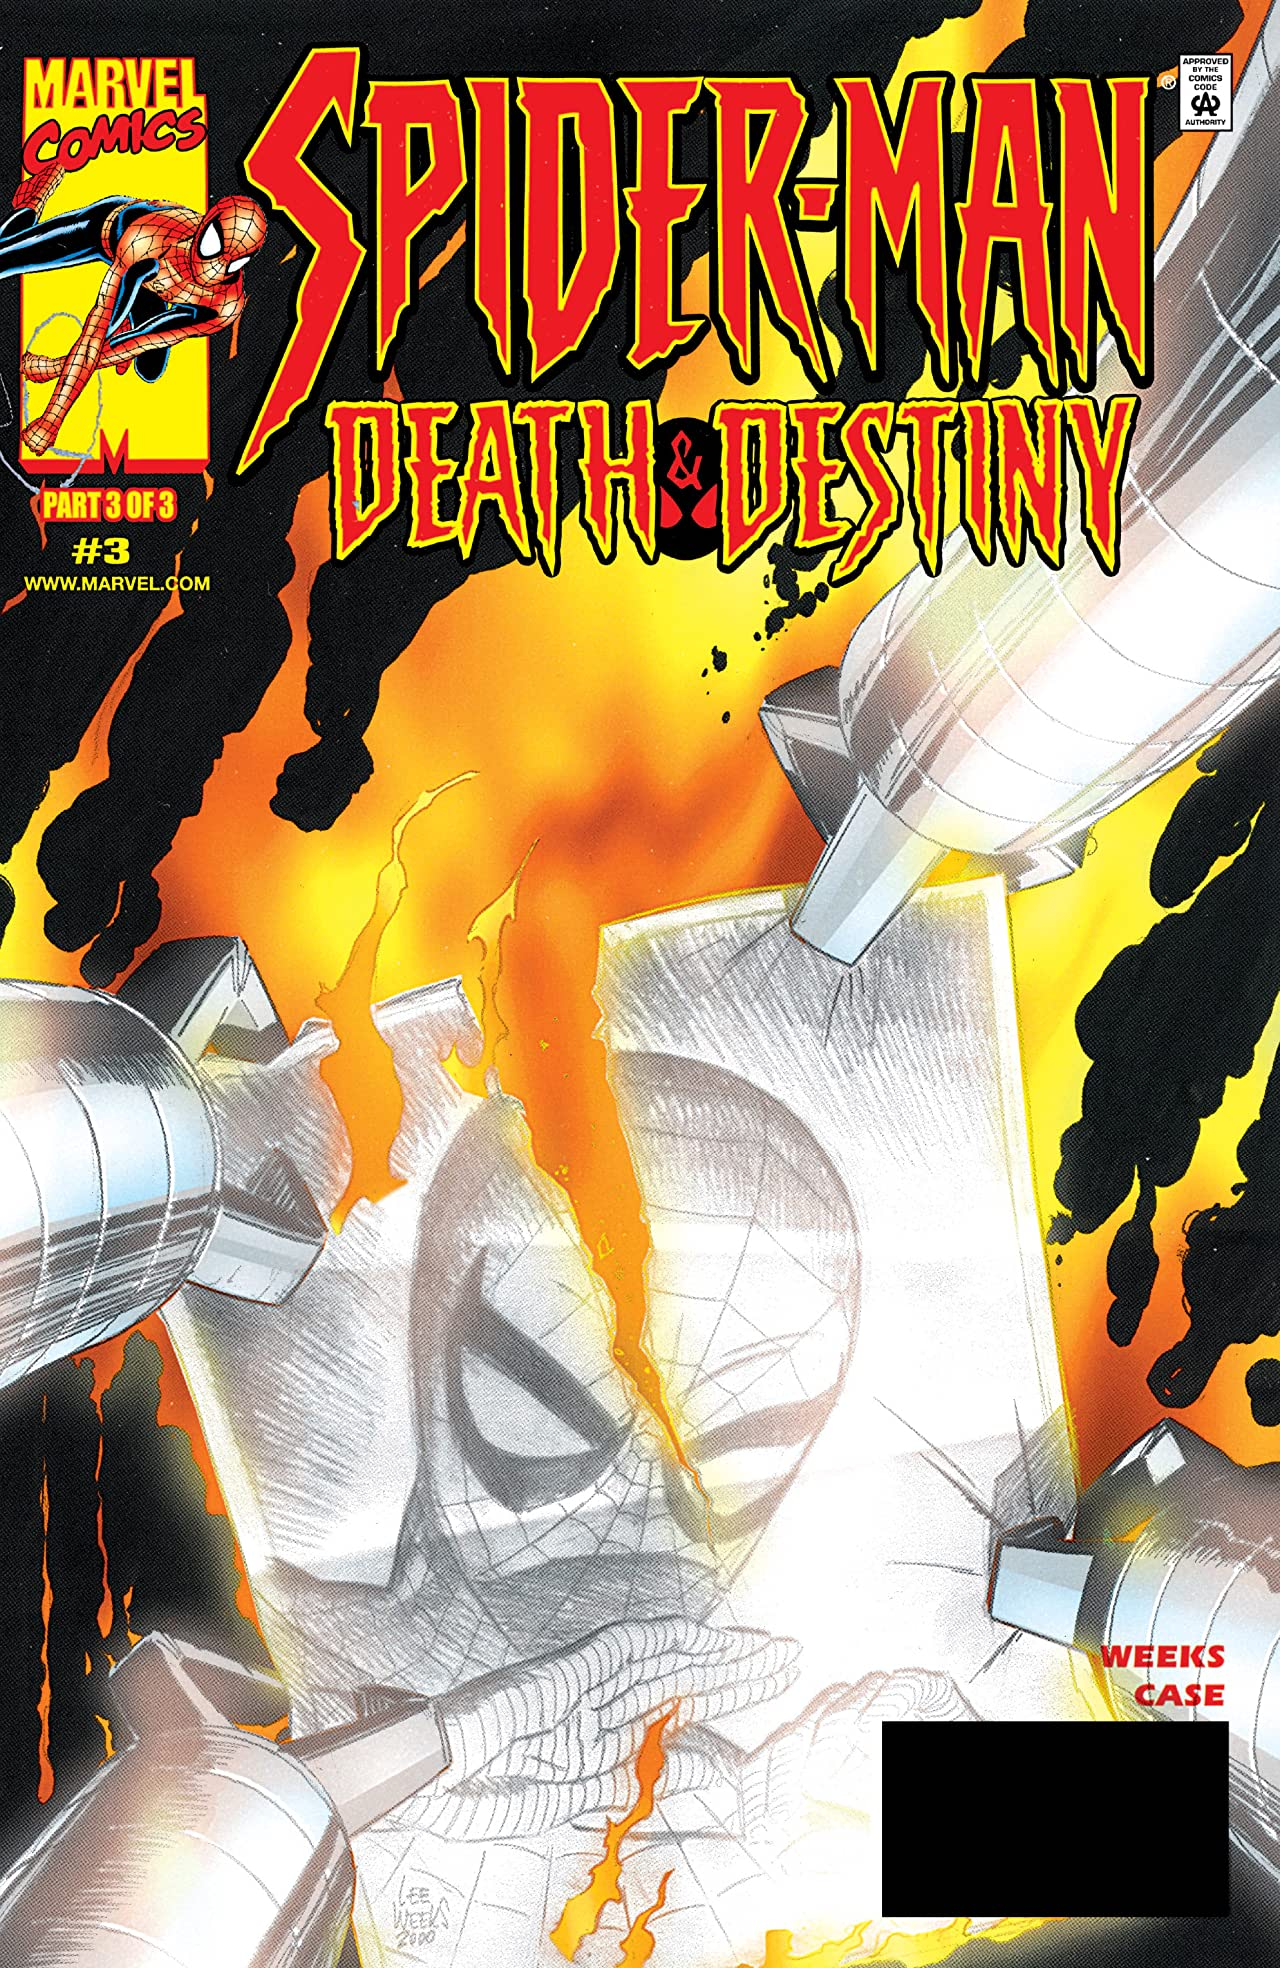 Spider-Man: Death and Destiny (2000) #3 (of 3)